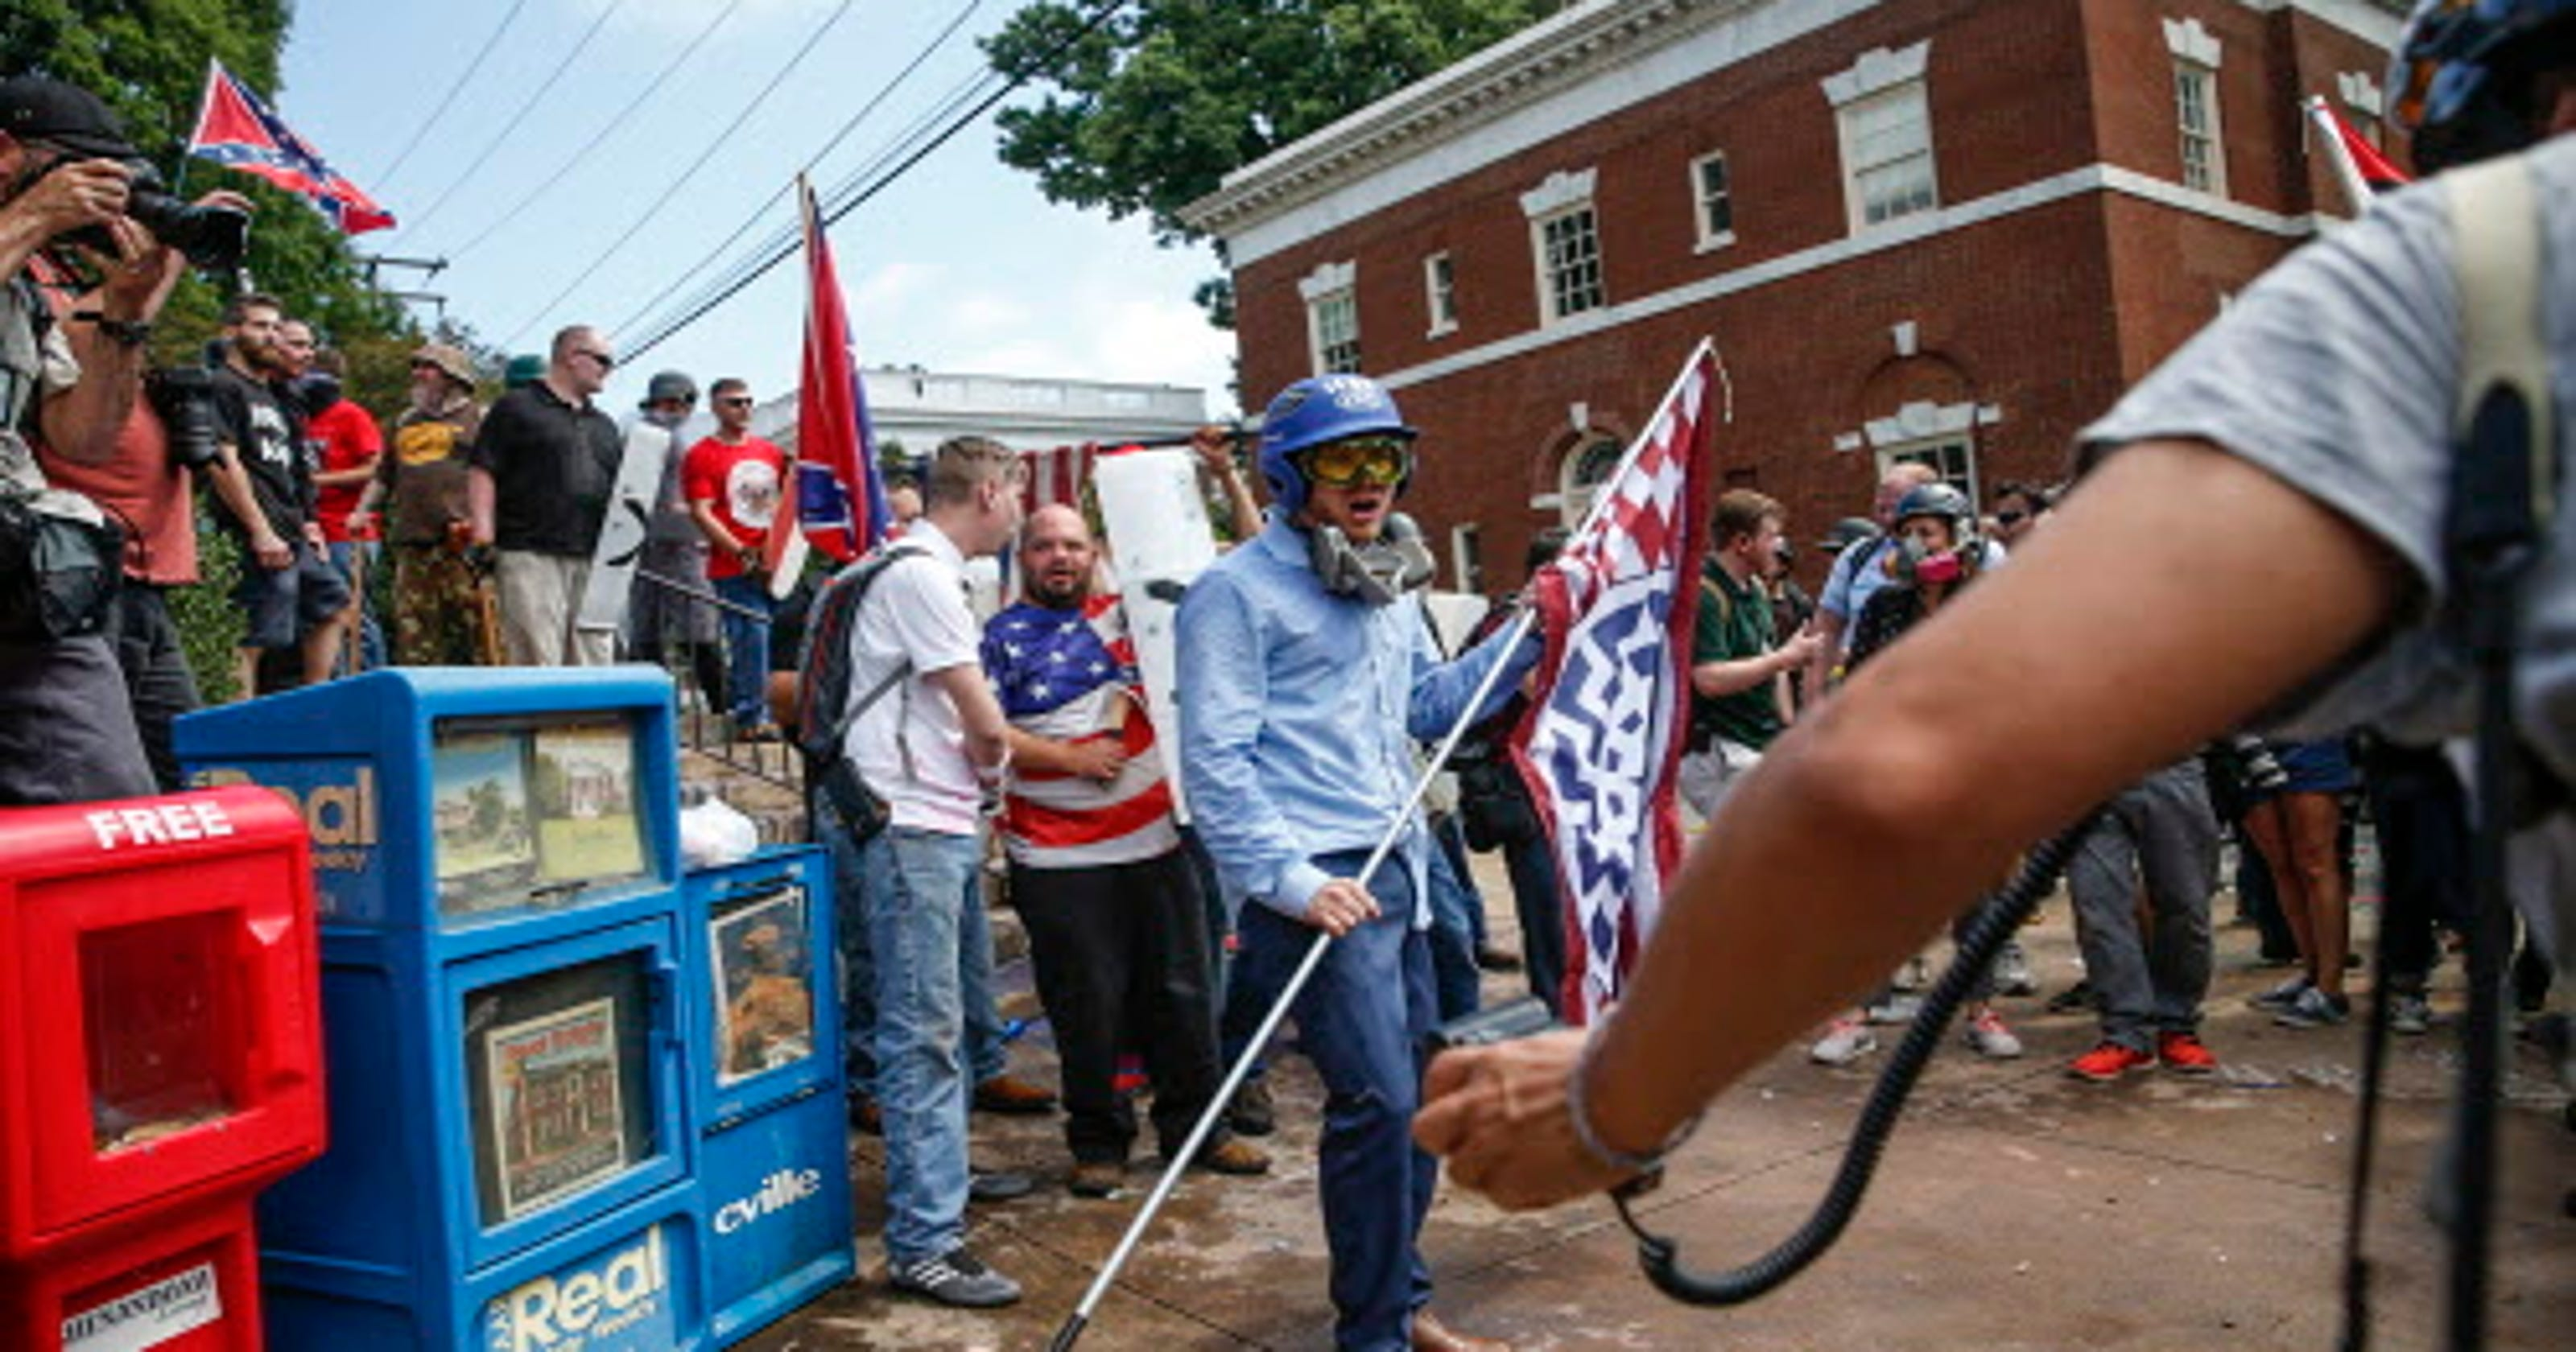 Charlottesville Swastikas On The Rise But Among Those Who